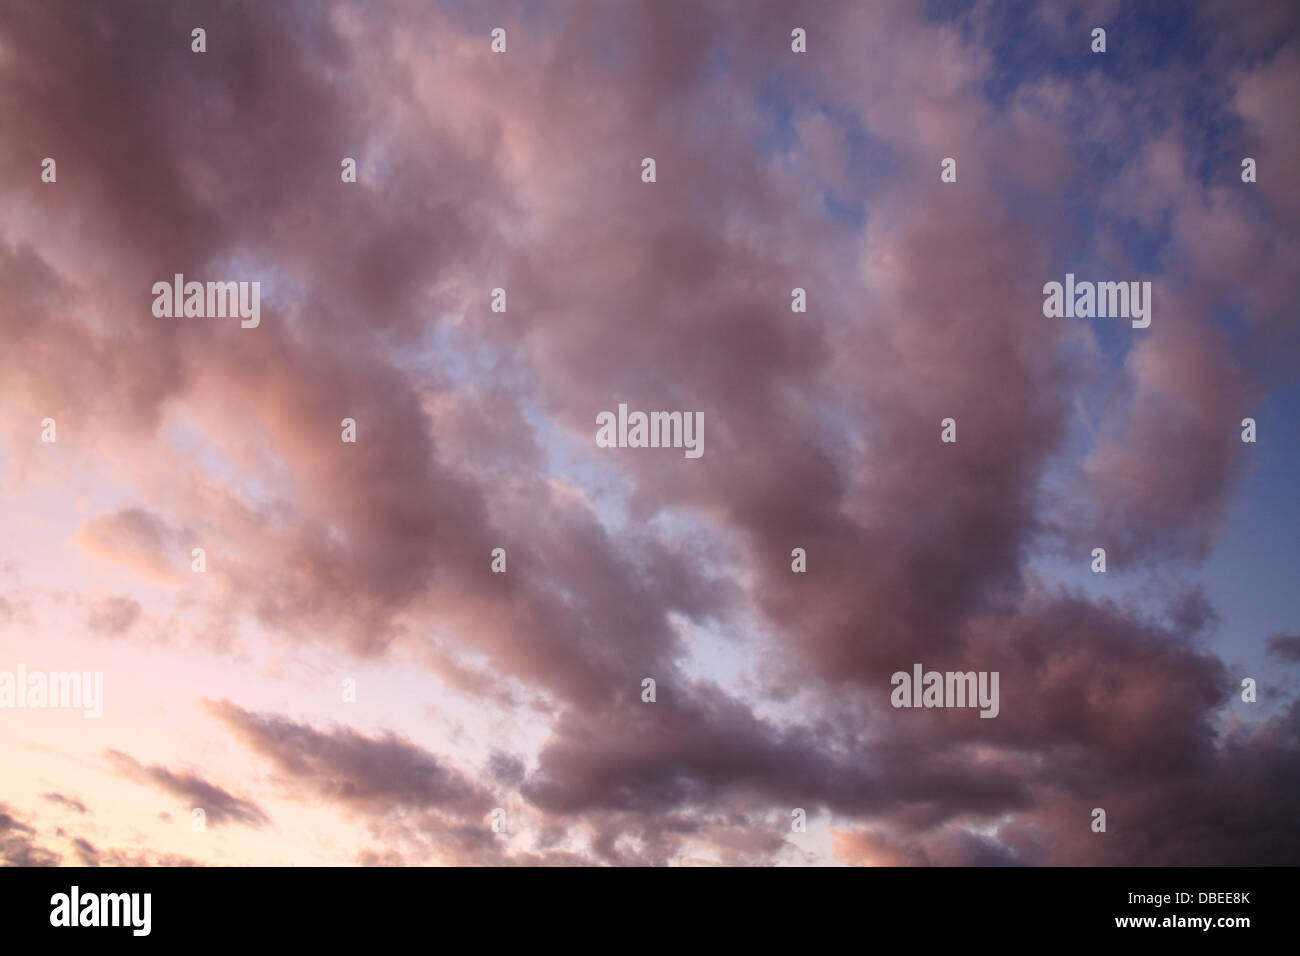 Sky And Cloud Scene, A Colorful And Ominous Looking Sunset Cloudscape - Stock Image